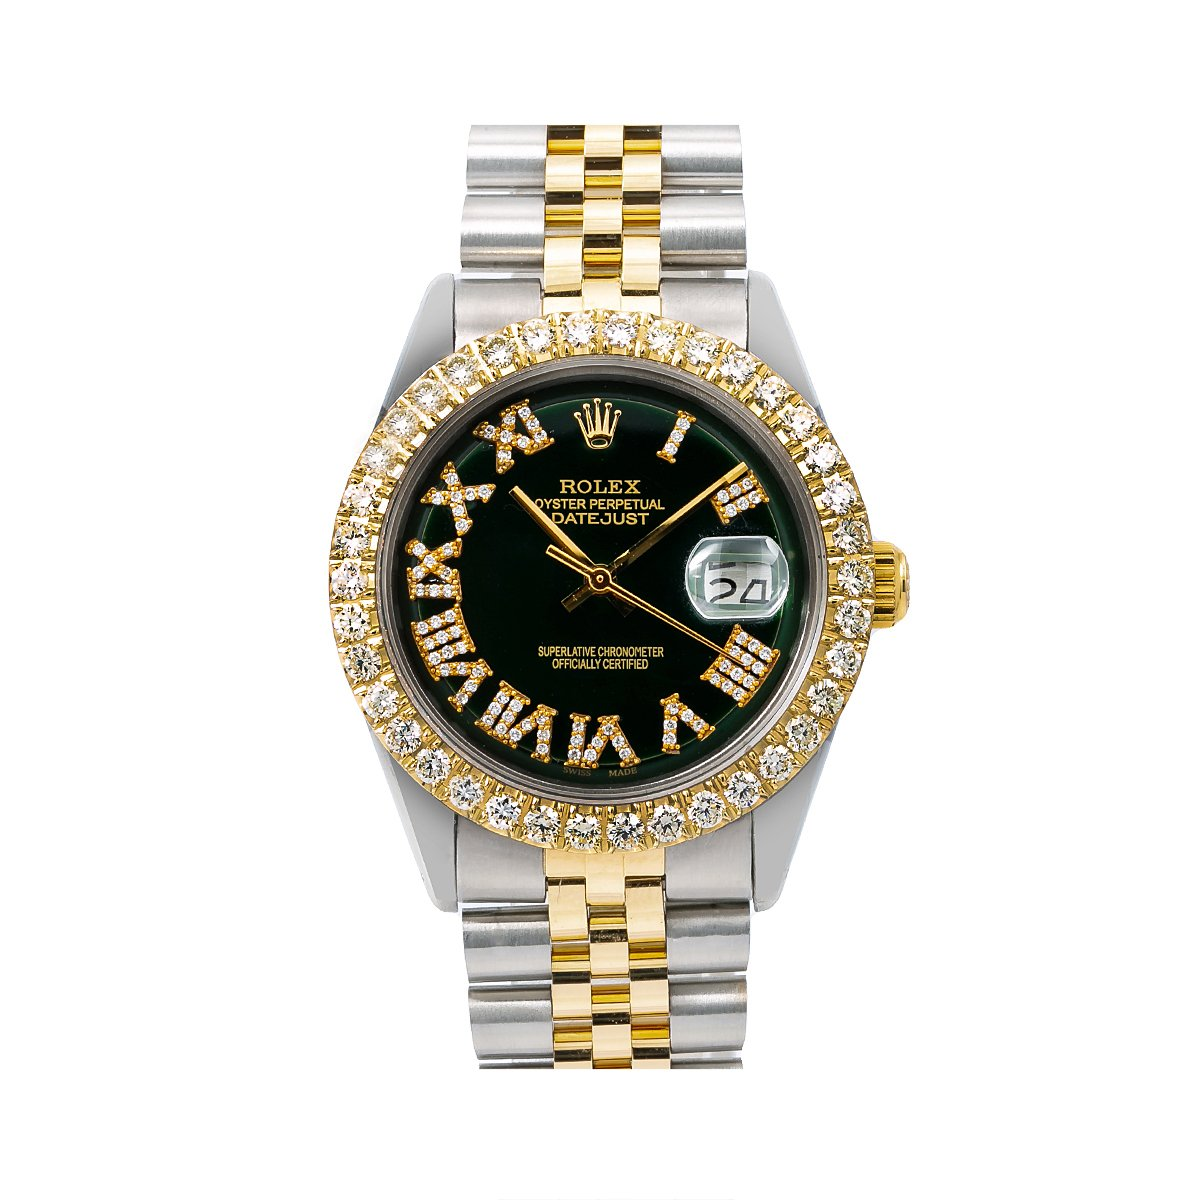 36mm Rolex Diamond Watch for Men Datejust 1603 Black Dial 3.75ct 18k Gold  Main Image